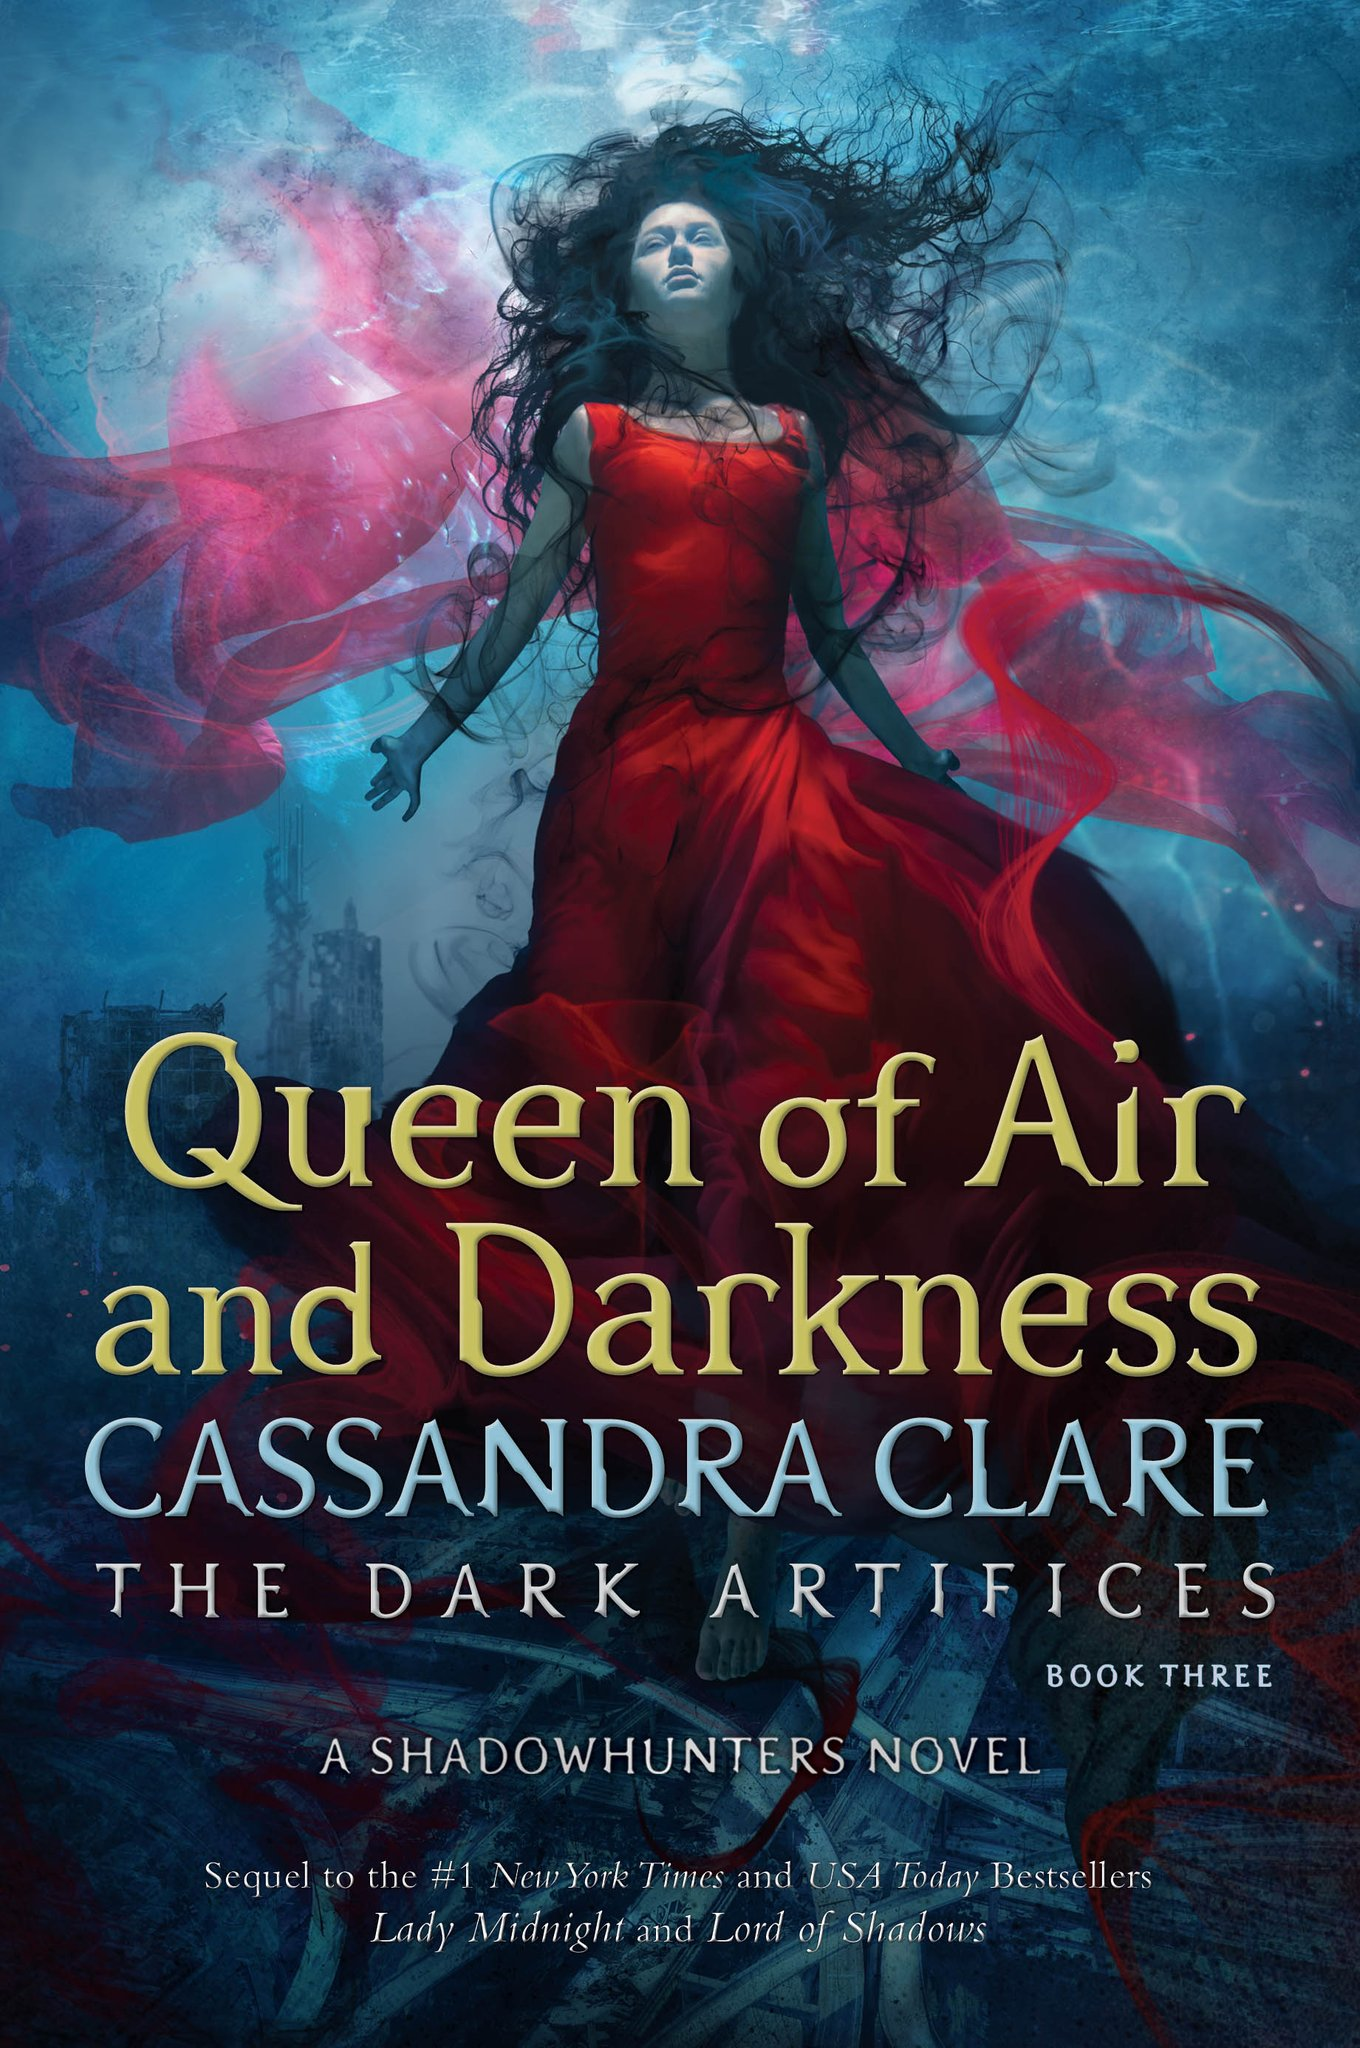 cassandra-clare-queen-of-air-and-darkness.jpg